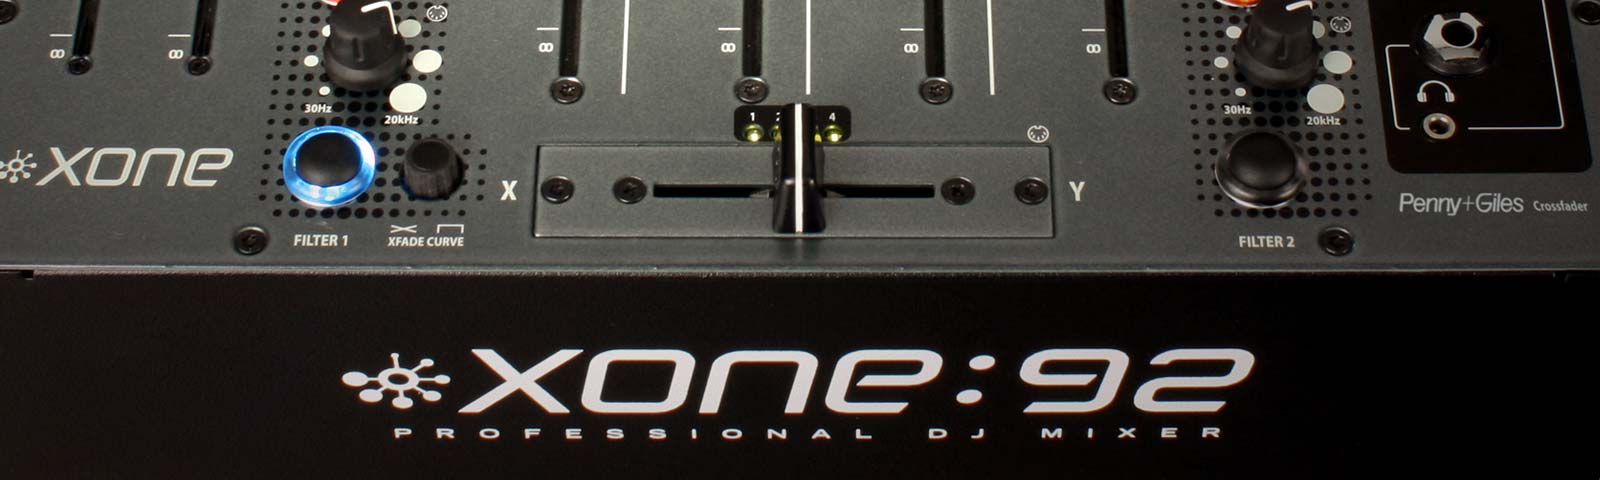 Allen & Heath Xone:92 Hire